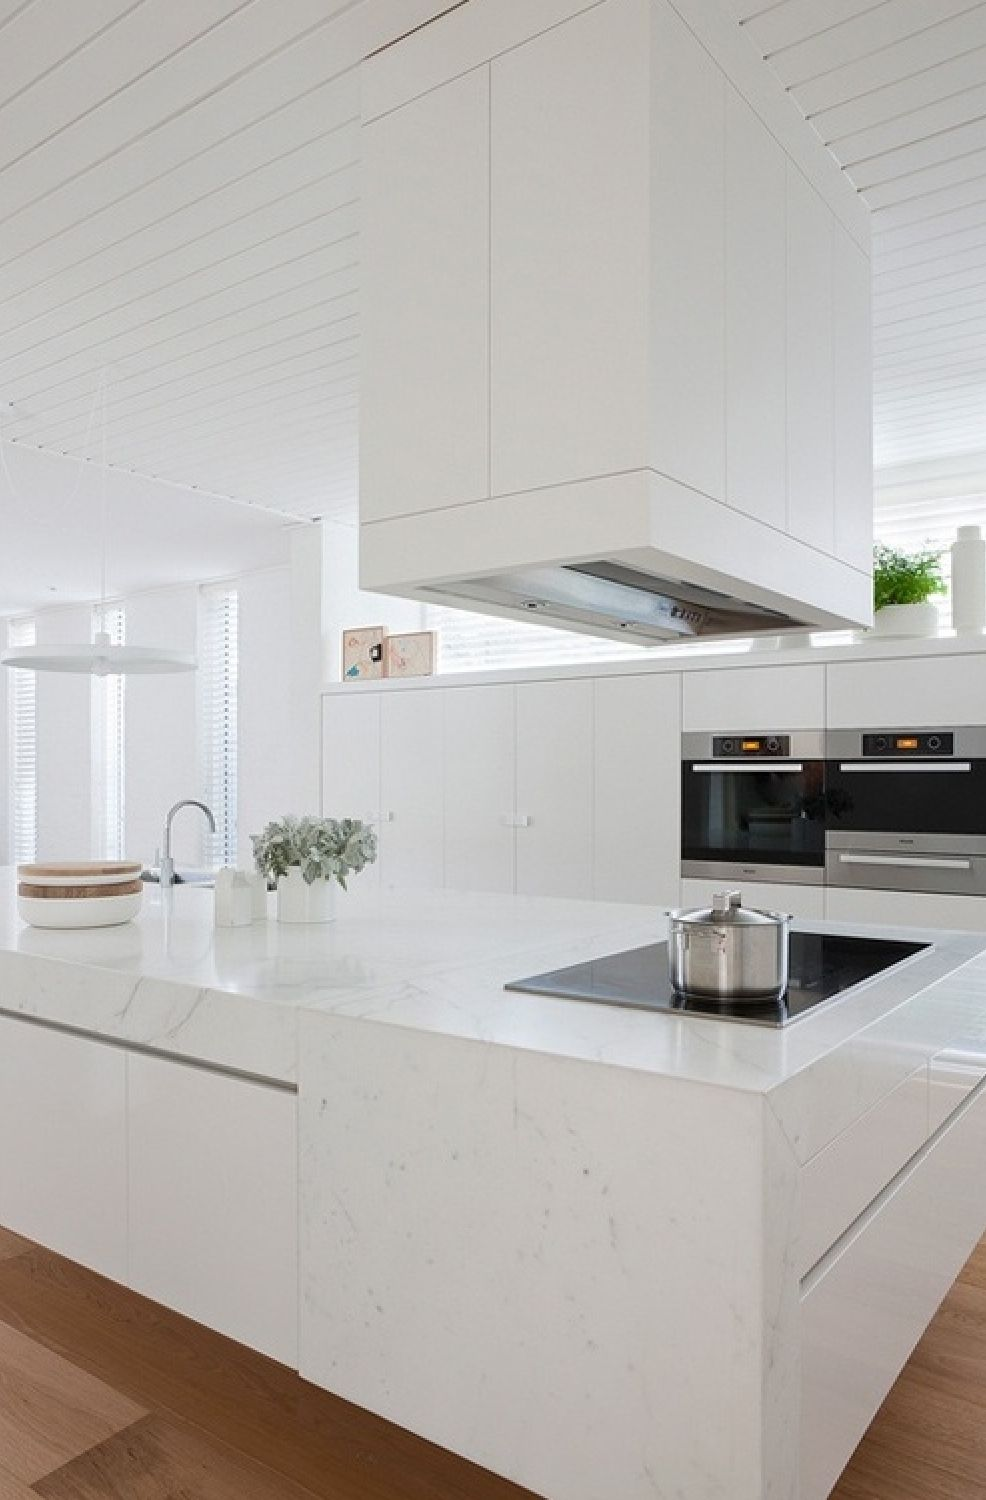 All White Stone Kitchen With Miele Appliances  Kitchen Unique Miele Kitchens Design Inspiration